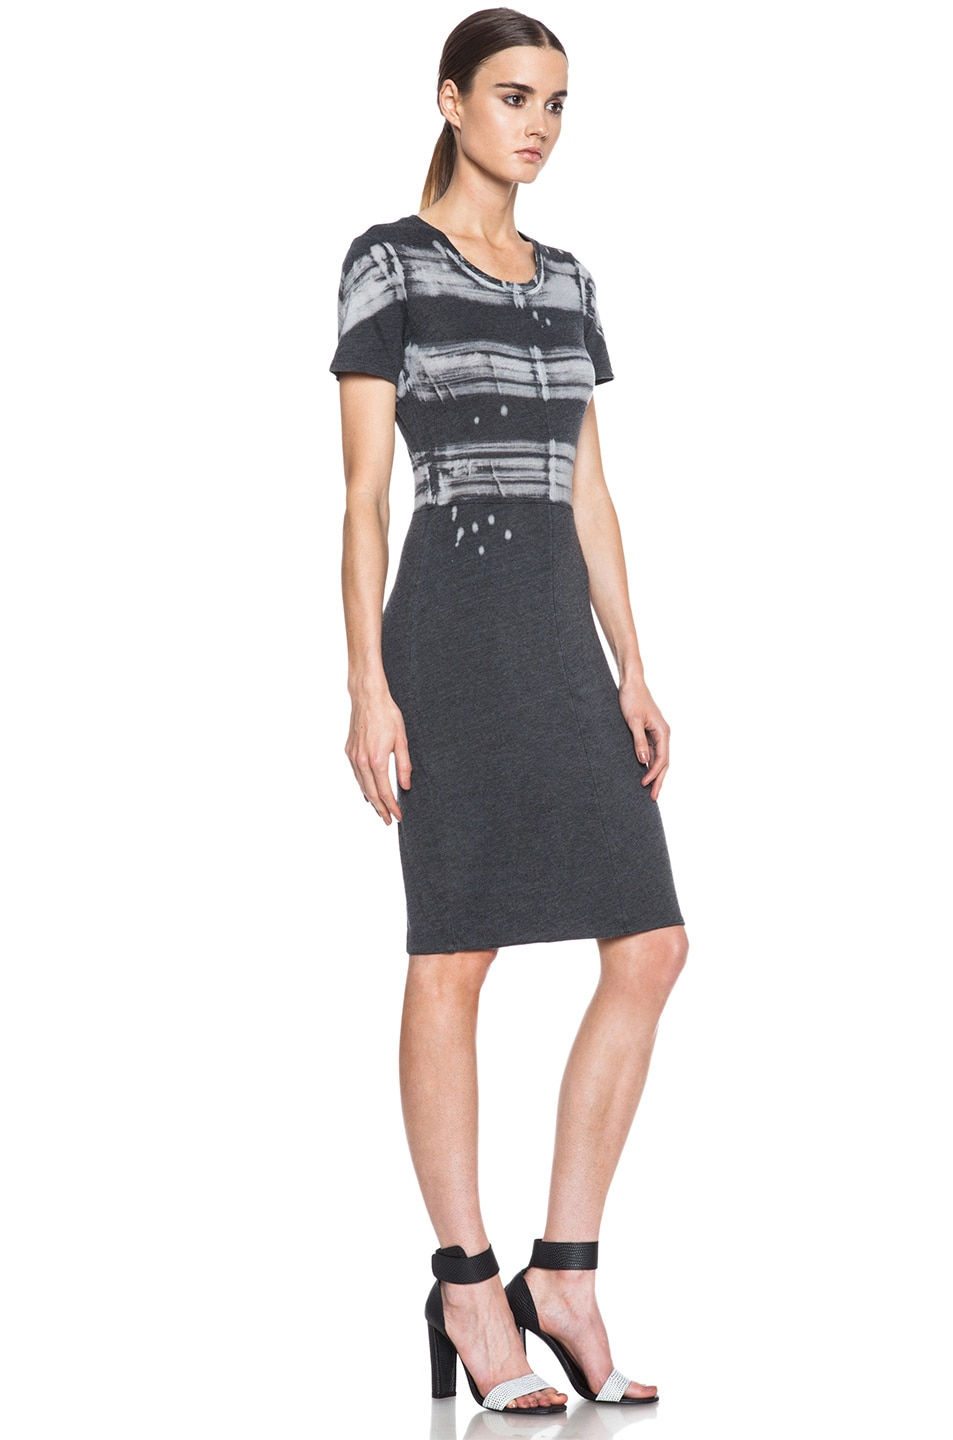 Image 3 of Raquel Allegra Cotton-Blend Cocktail Dress in Painter Stripe Black